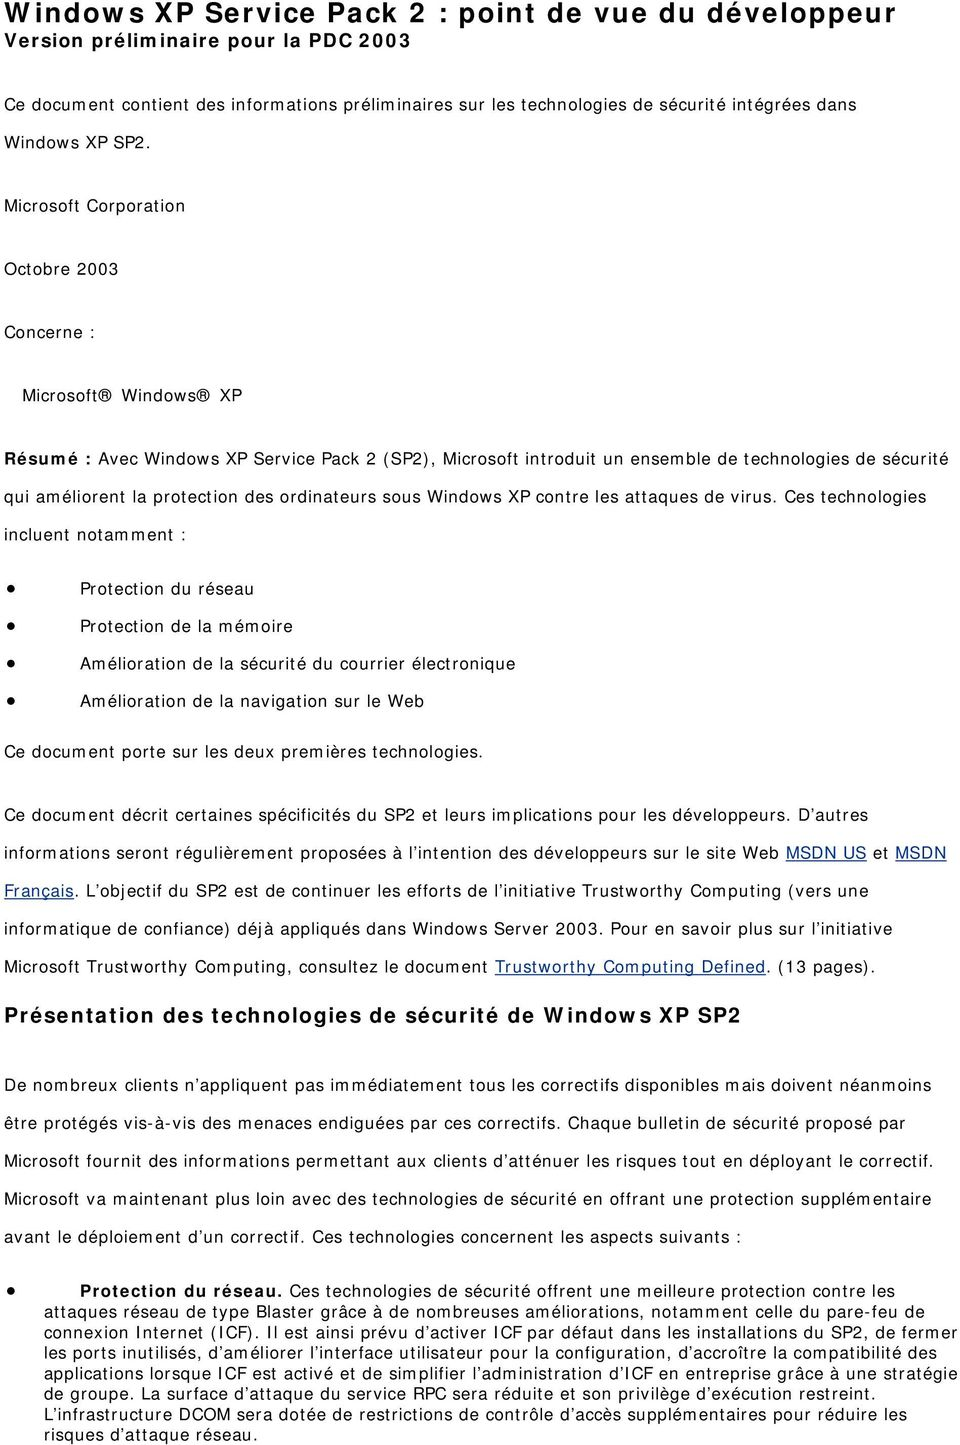 Microsoft Corporation Octobre 2003 Concerne : Microsoft Windows XP Résumé : Avec Windows XP Service Pack 2 (SP2), Microsoft introduit un ensemble de technologies de sécurité qui améliorent la